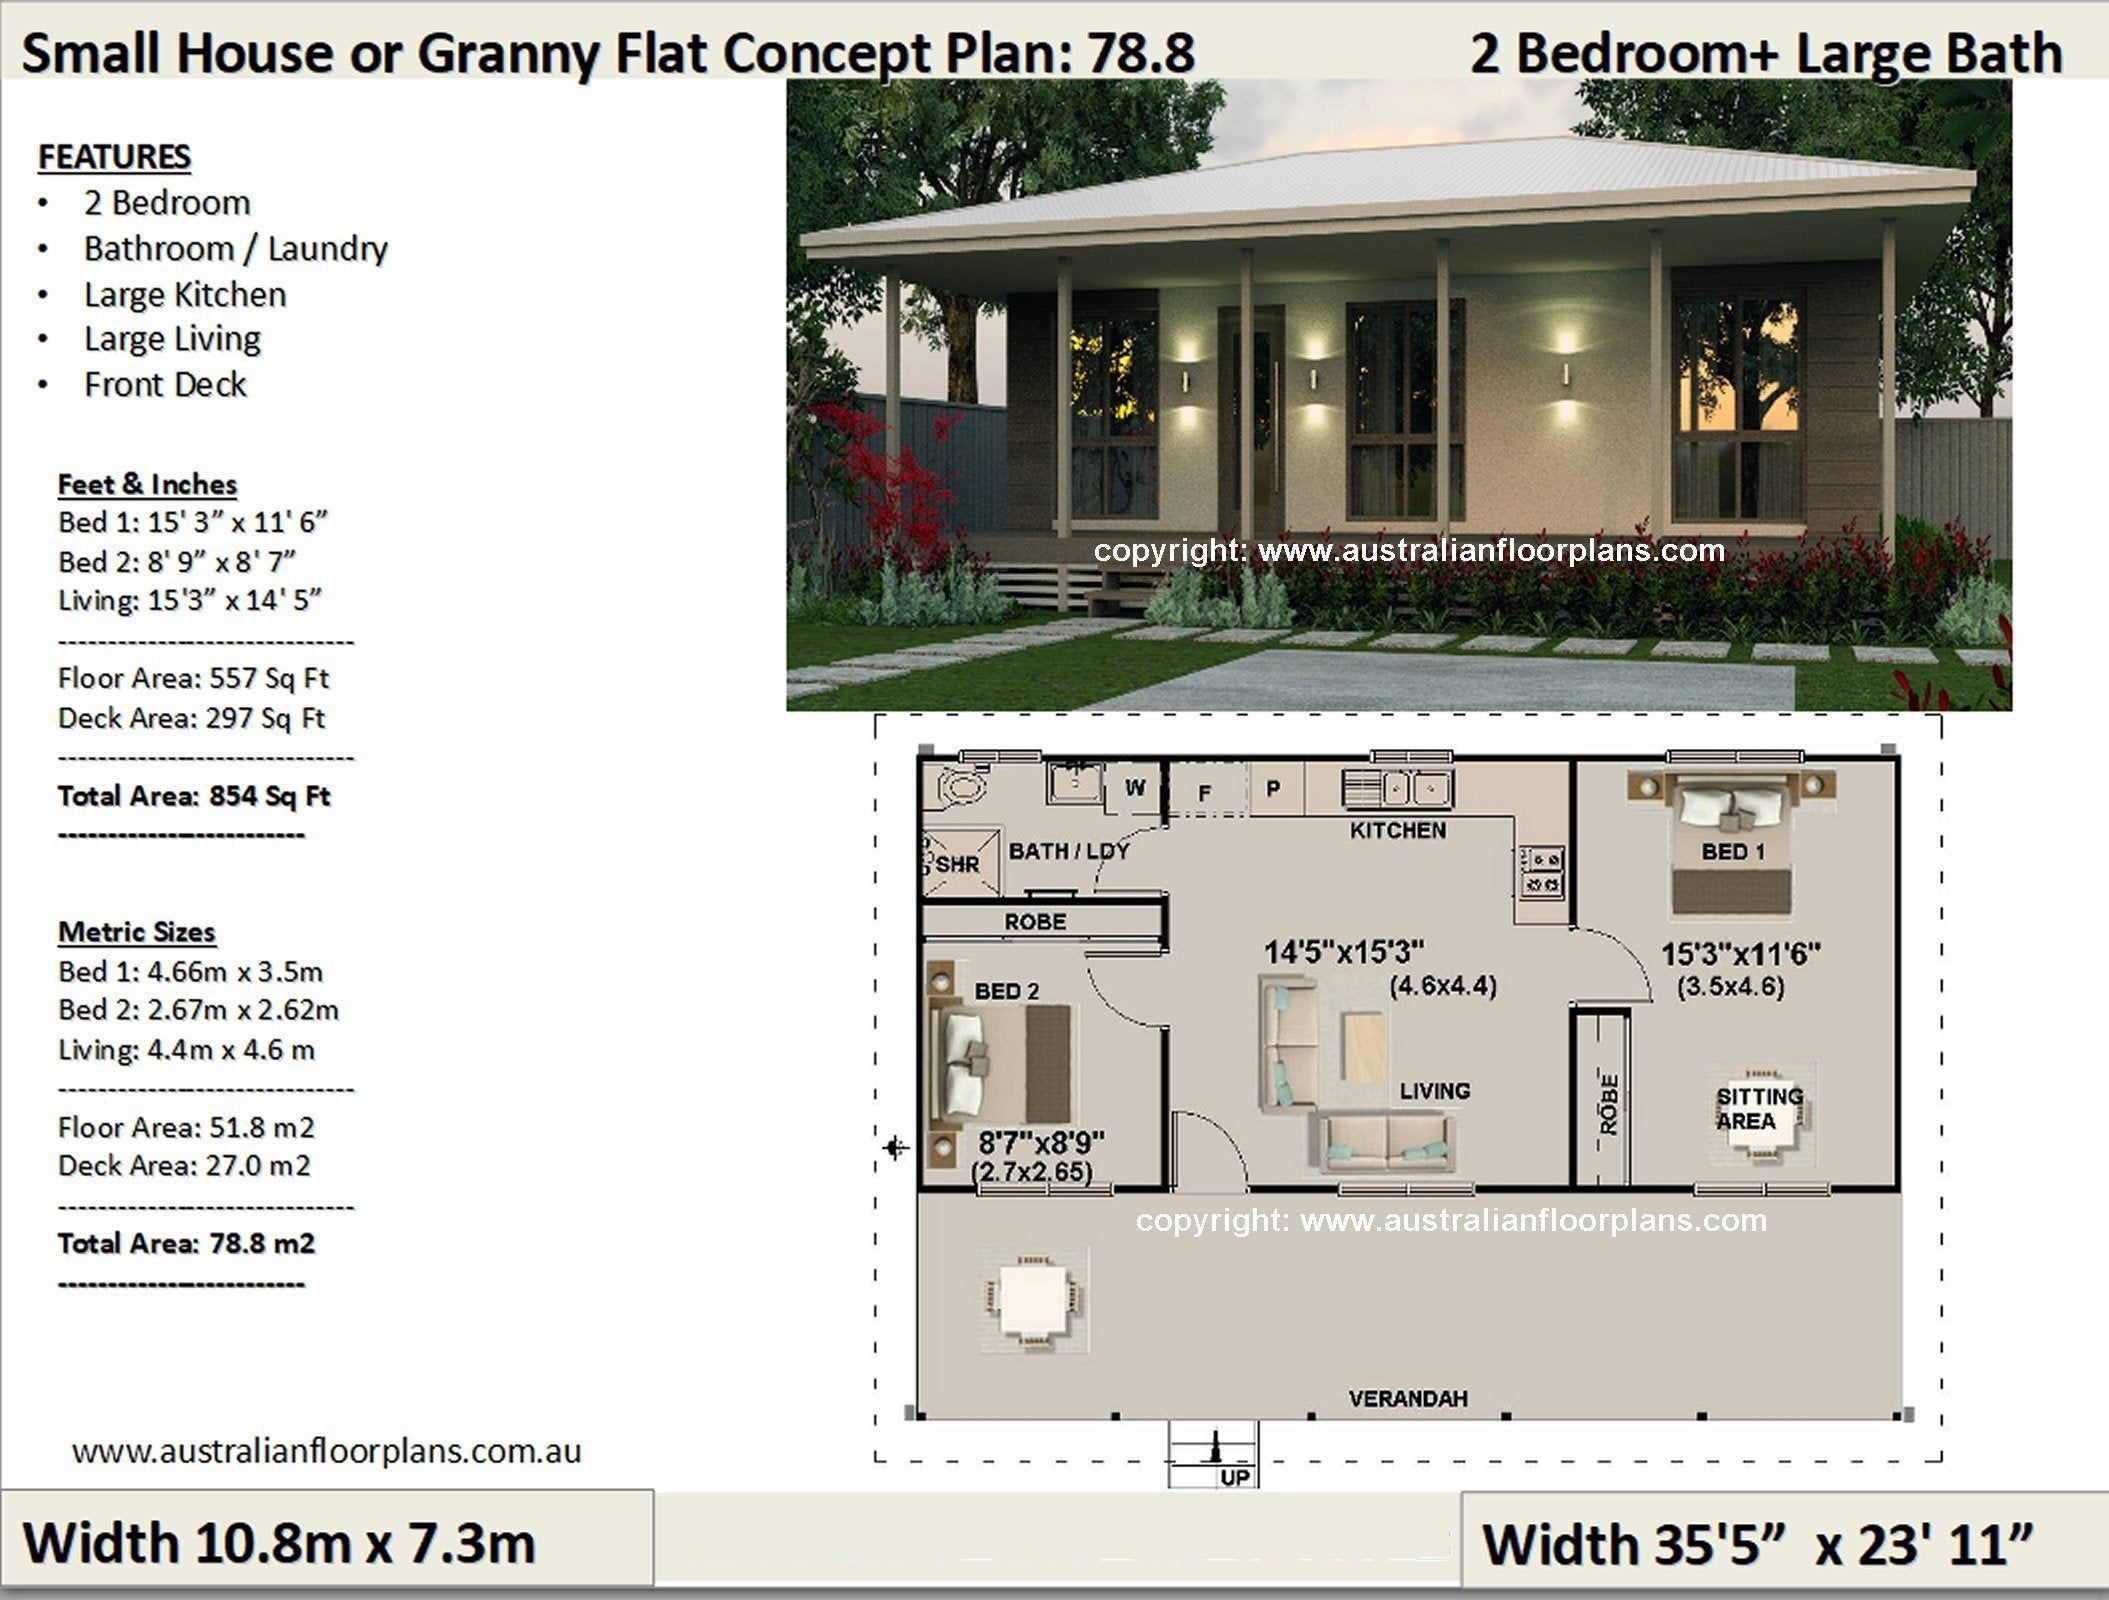 Affordable Tiny House Plans Home Design 78 8 2 Bedroom Construction Concept Floor Plans For Sale House Plans For Sale Tiny House Plans Bedroom House Plans